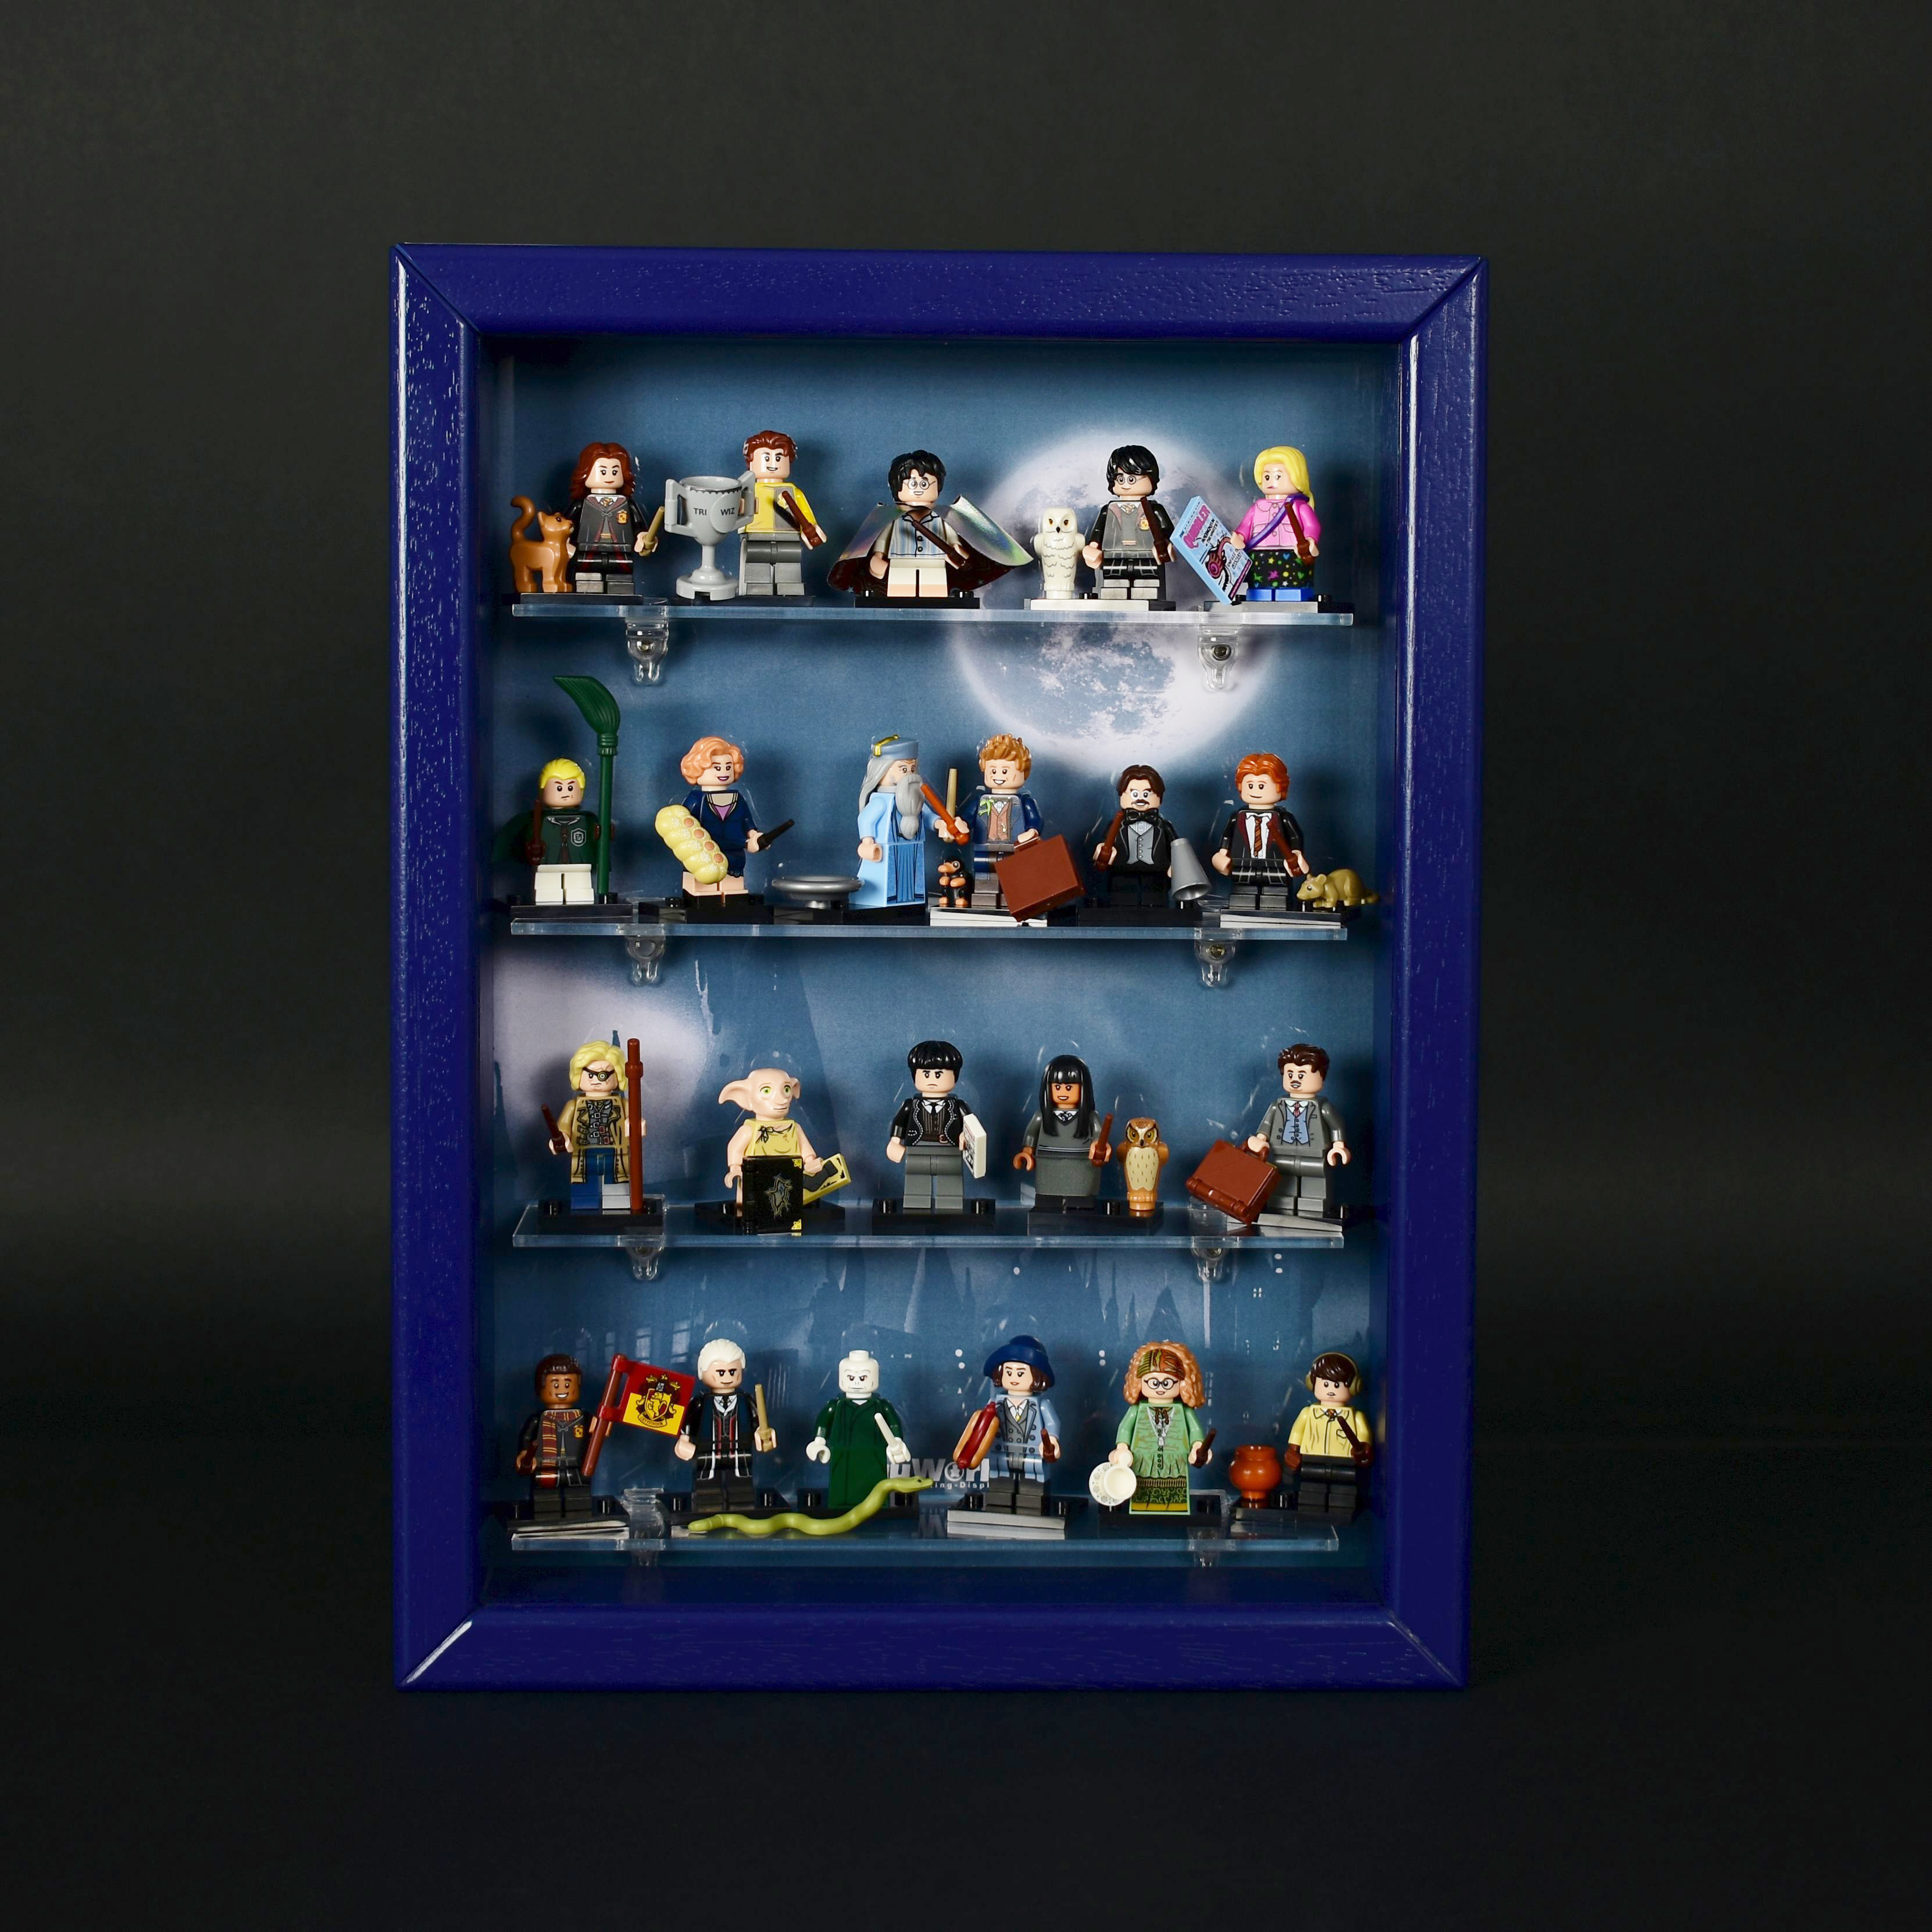 figumultiregal system vitrine f r eure lego serie 71022 harry potter eiche kobaldblau. Black Bedroom Furniture Sets. Home Design Ideas